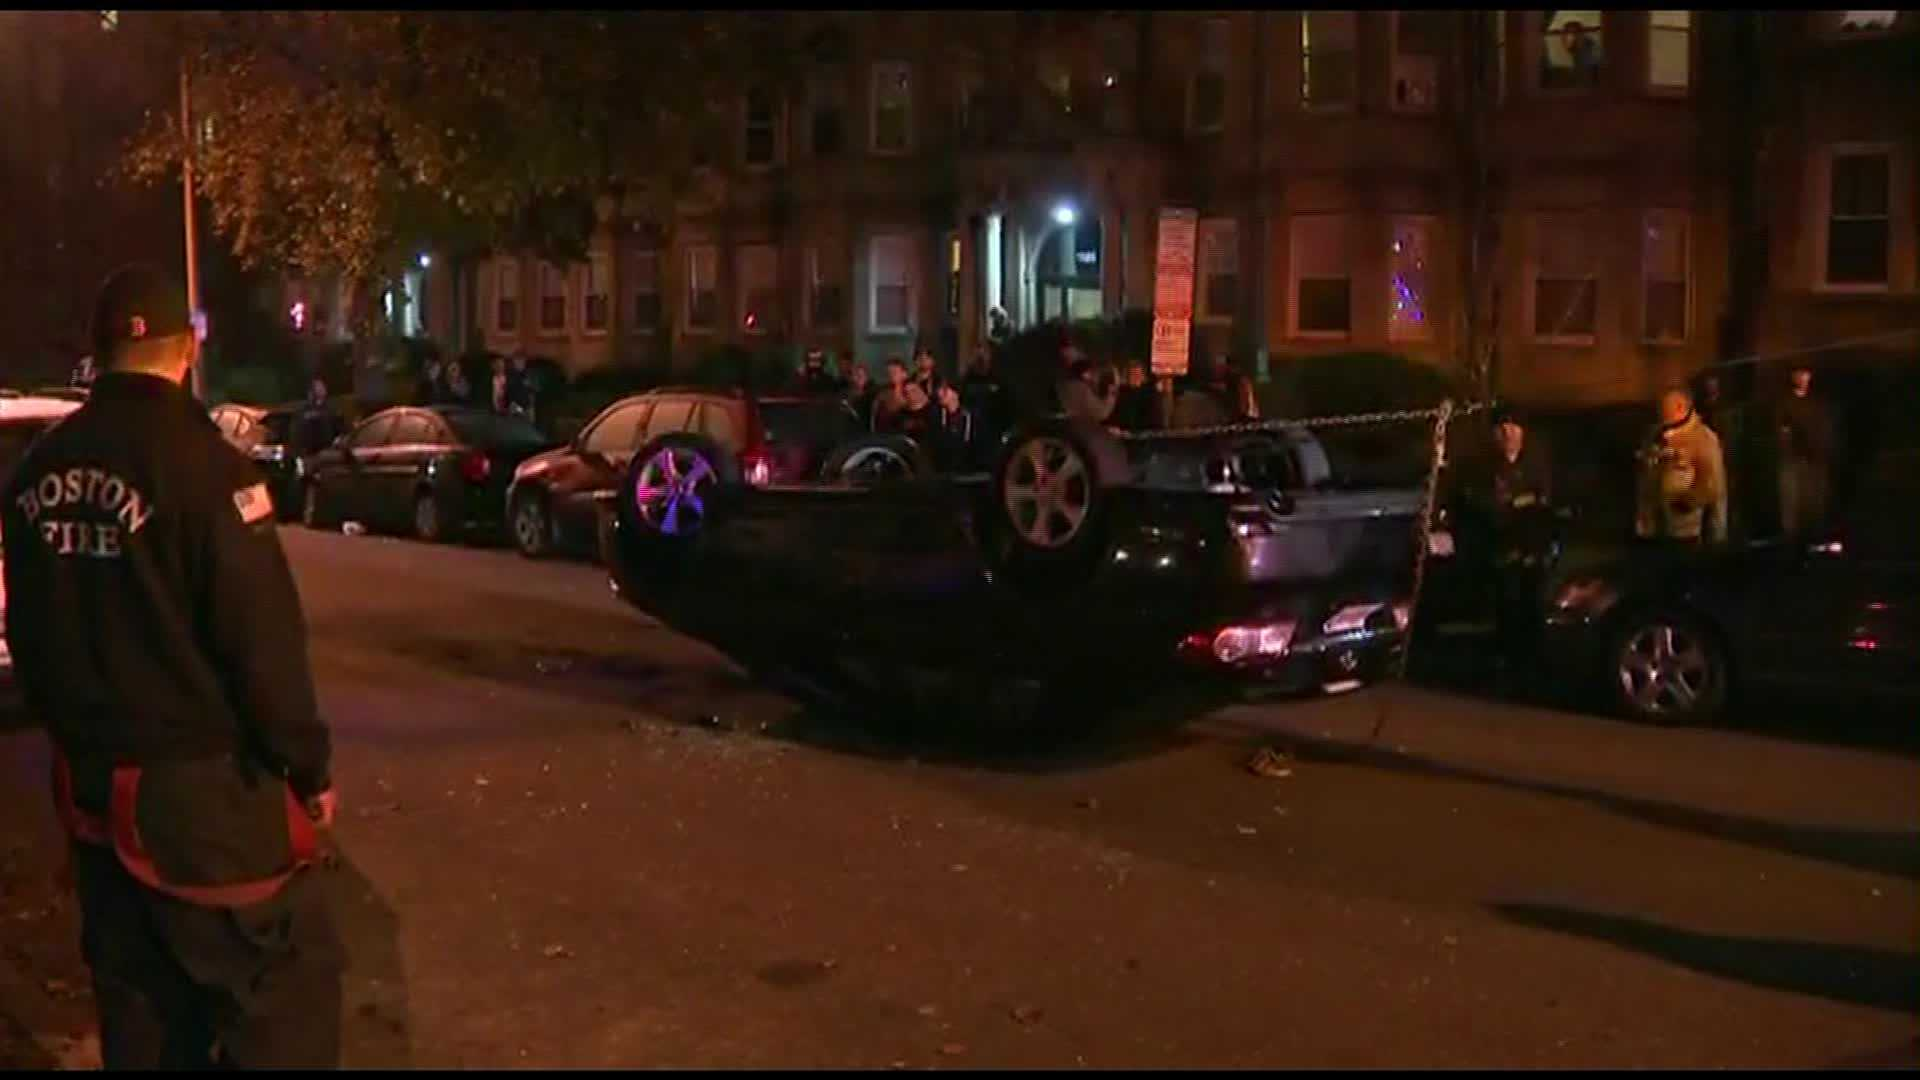 Car flipped in World Series vandalism 103113